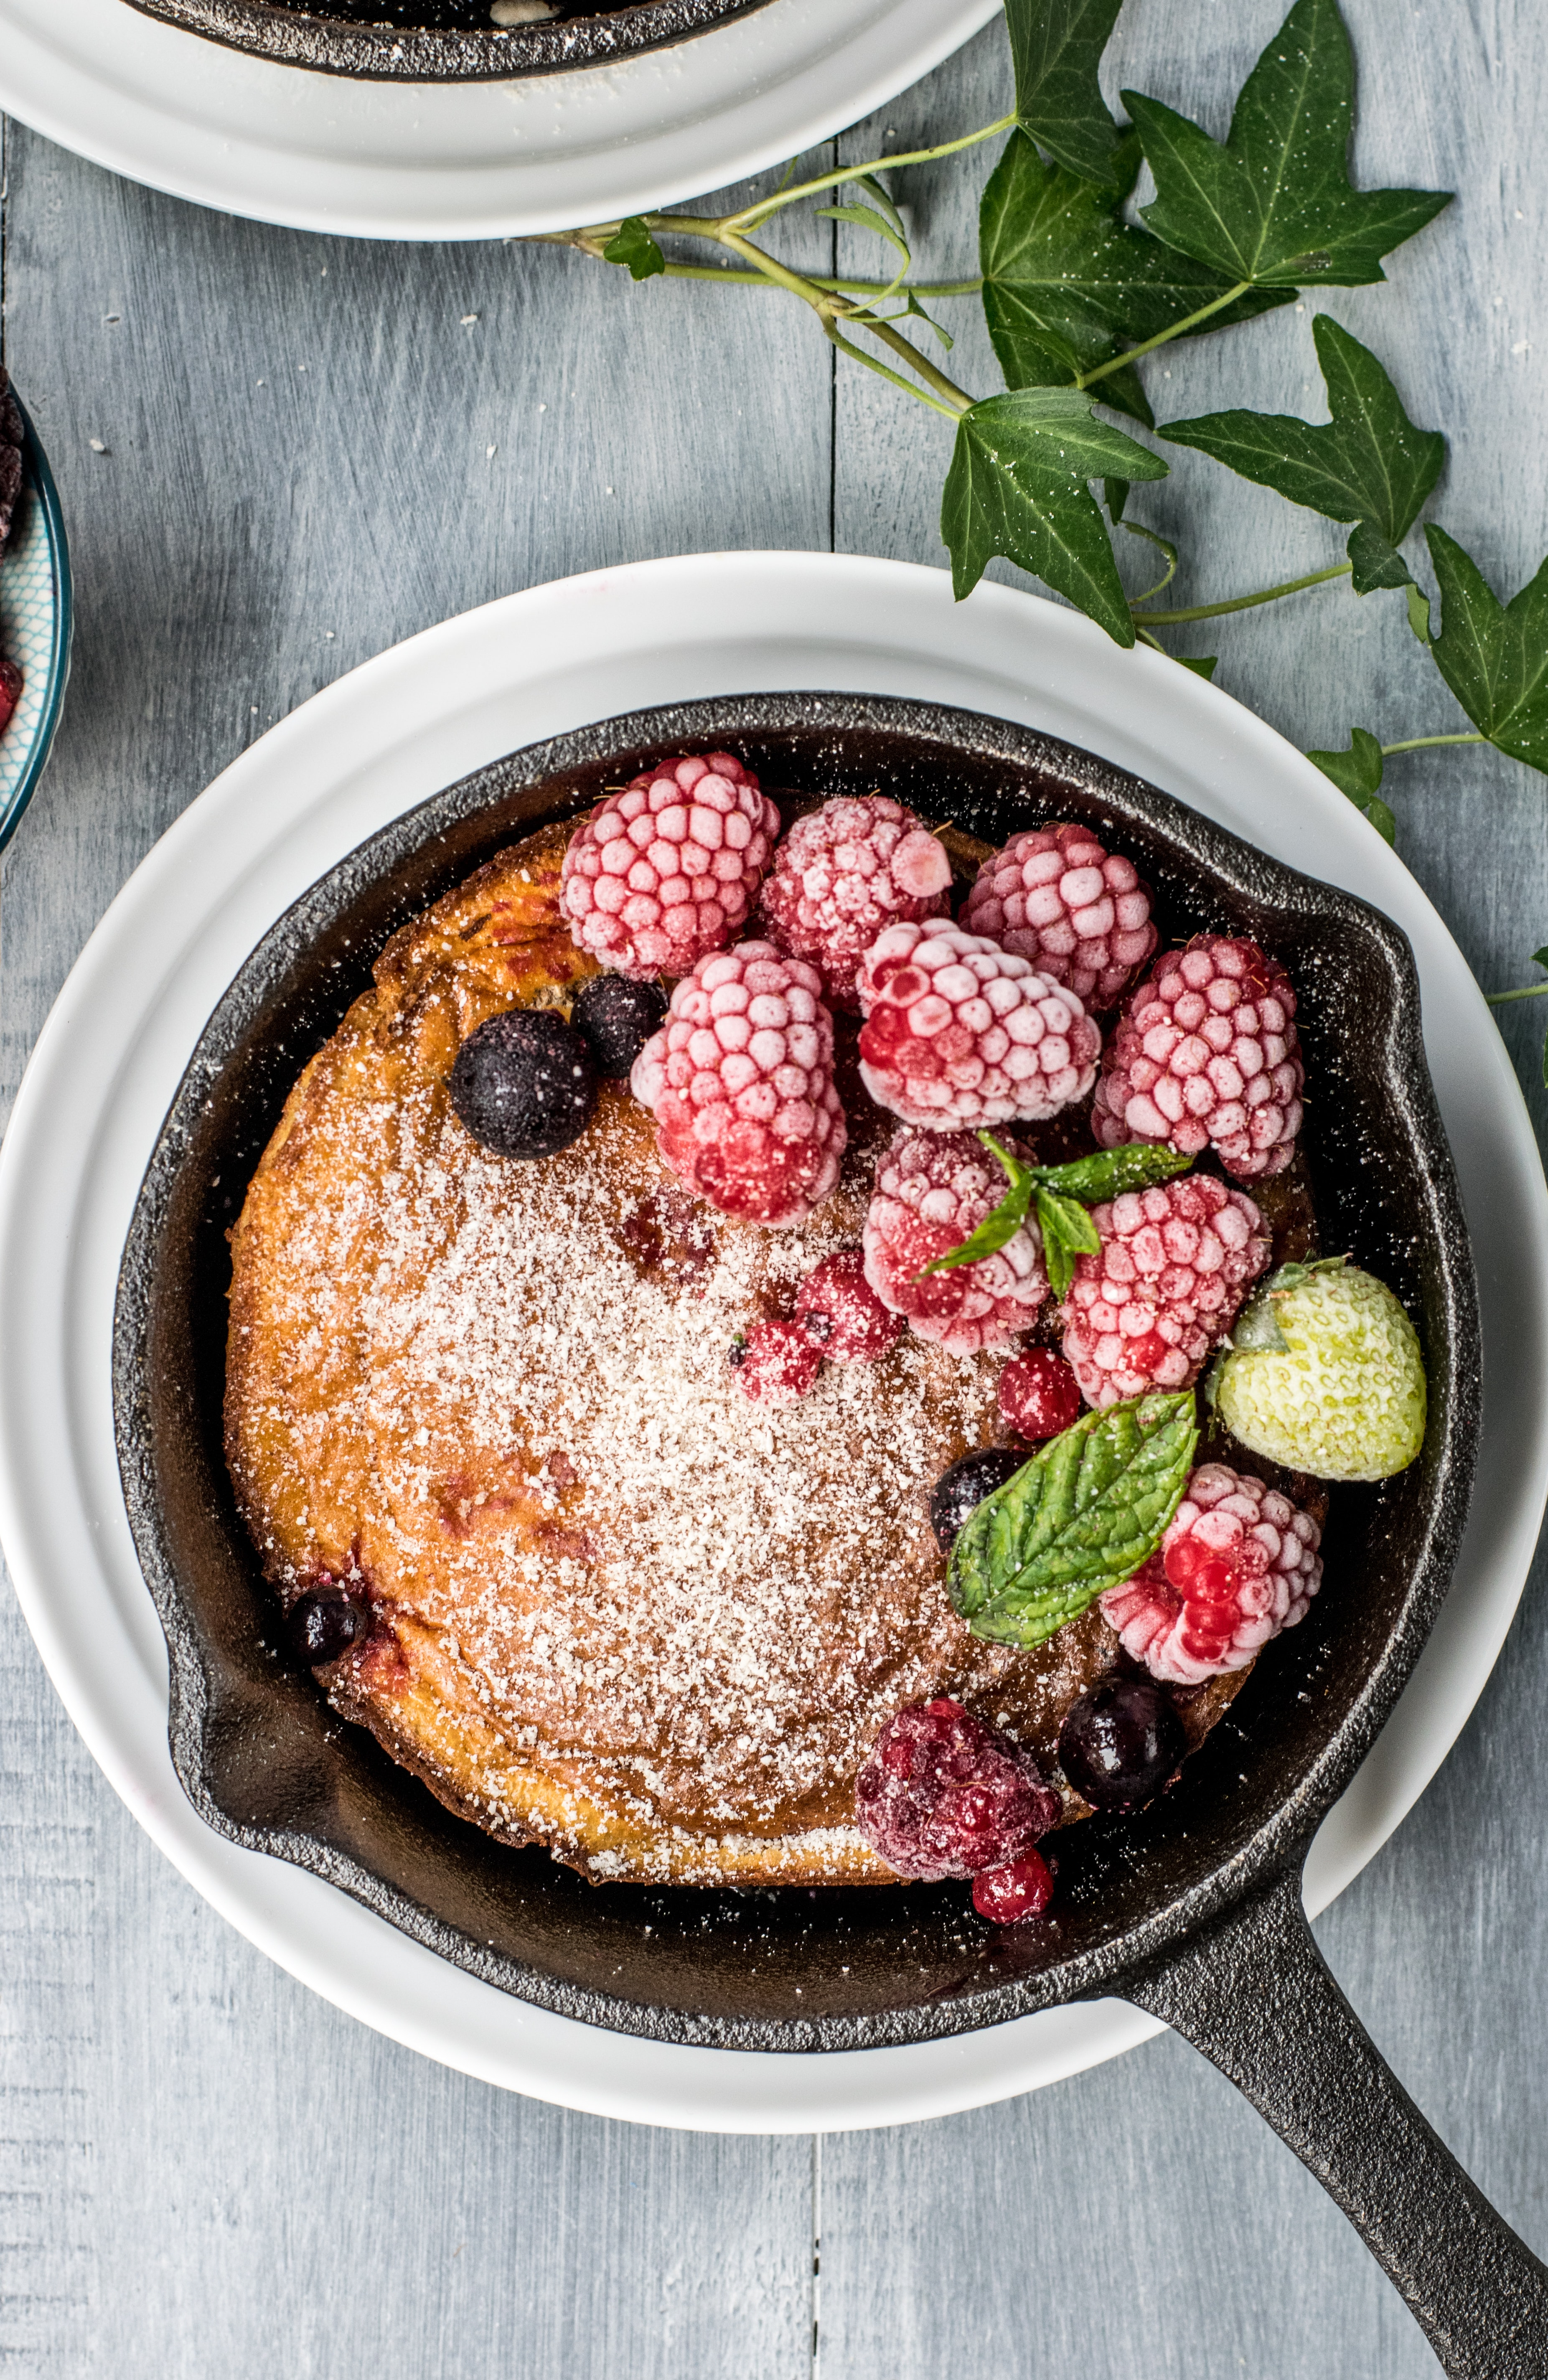 Rustic cast iron skillet cake with berries and powdered sugar